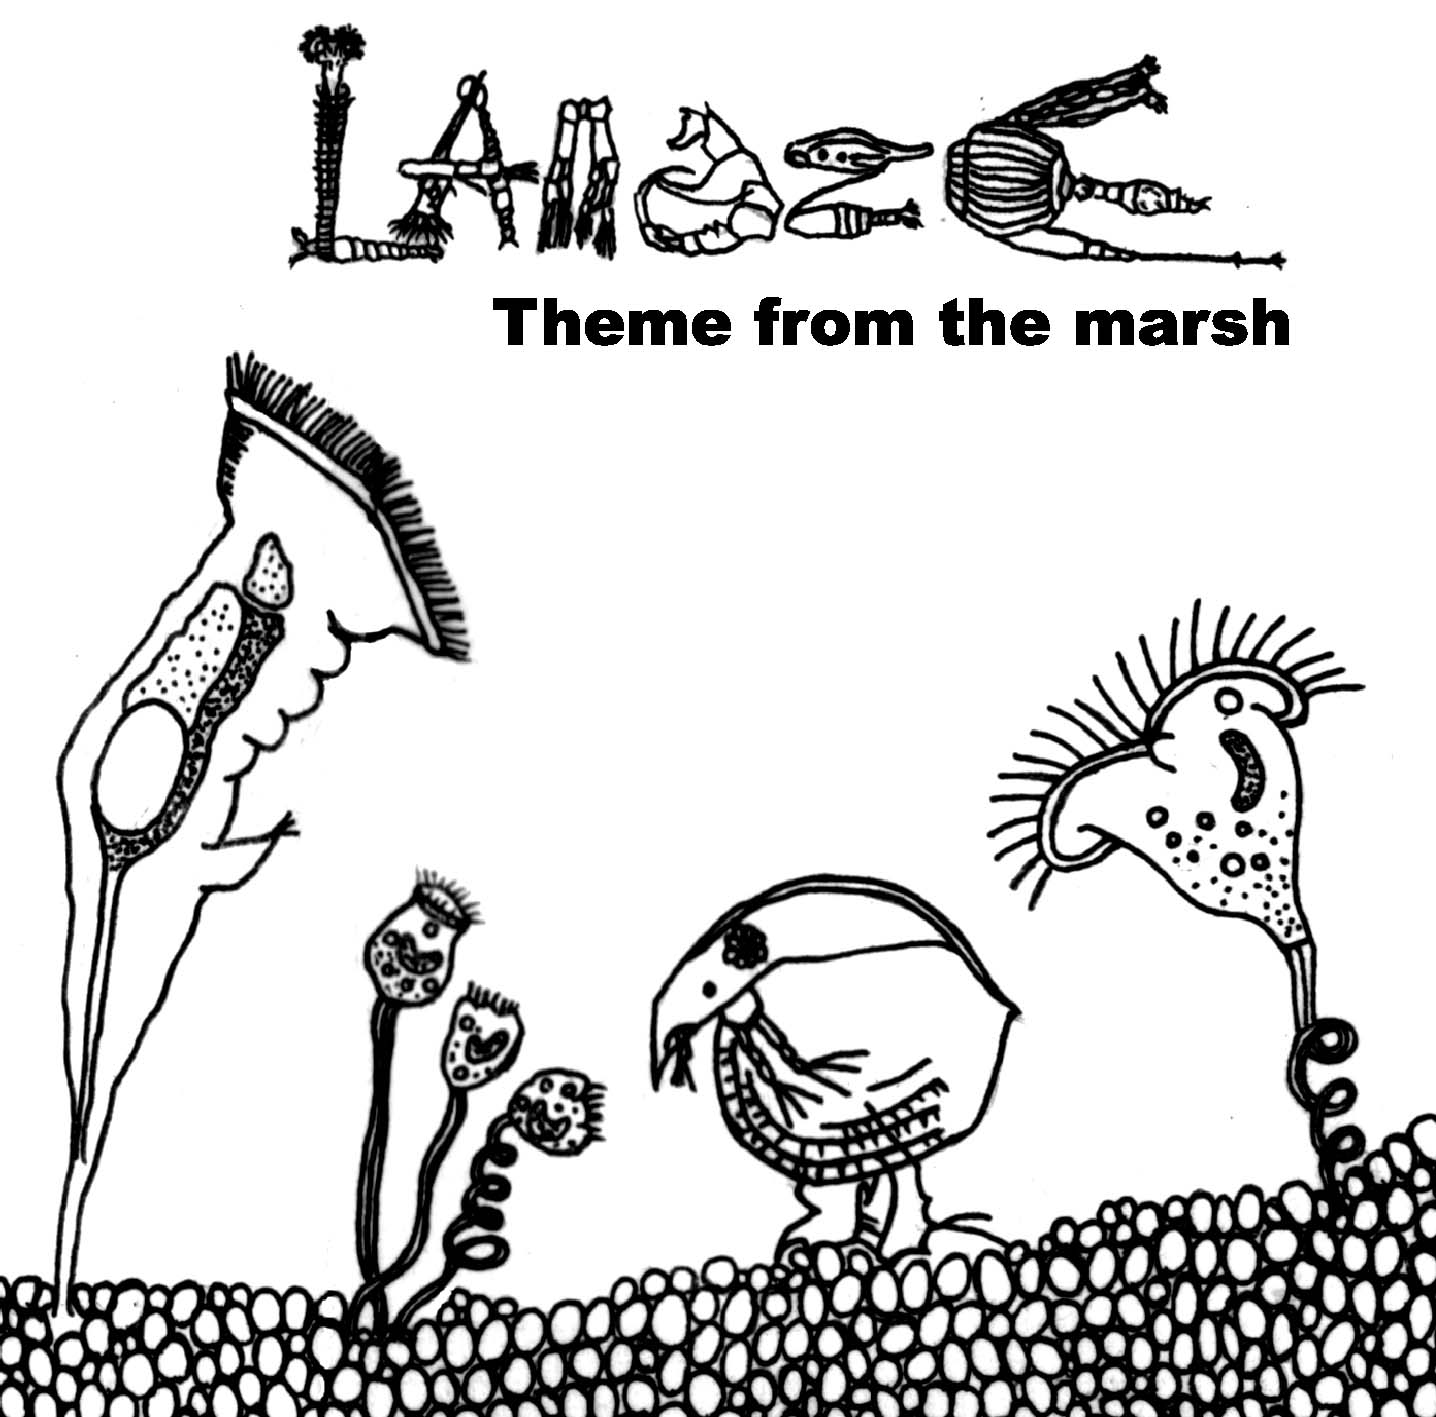 Theme from the marsh